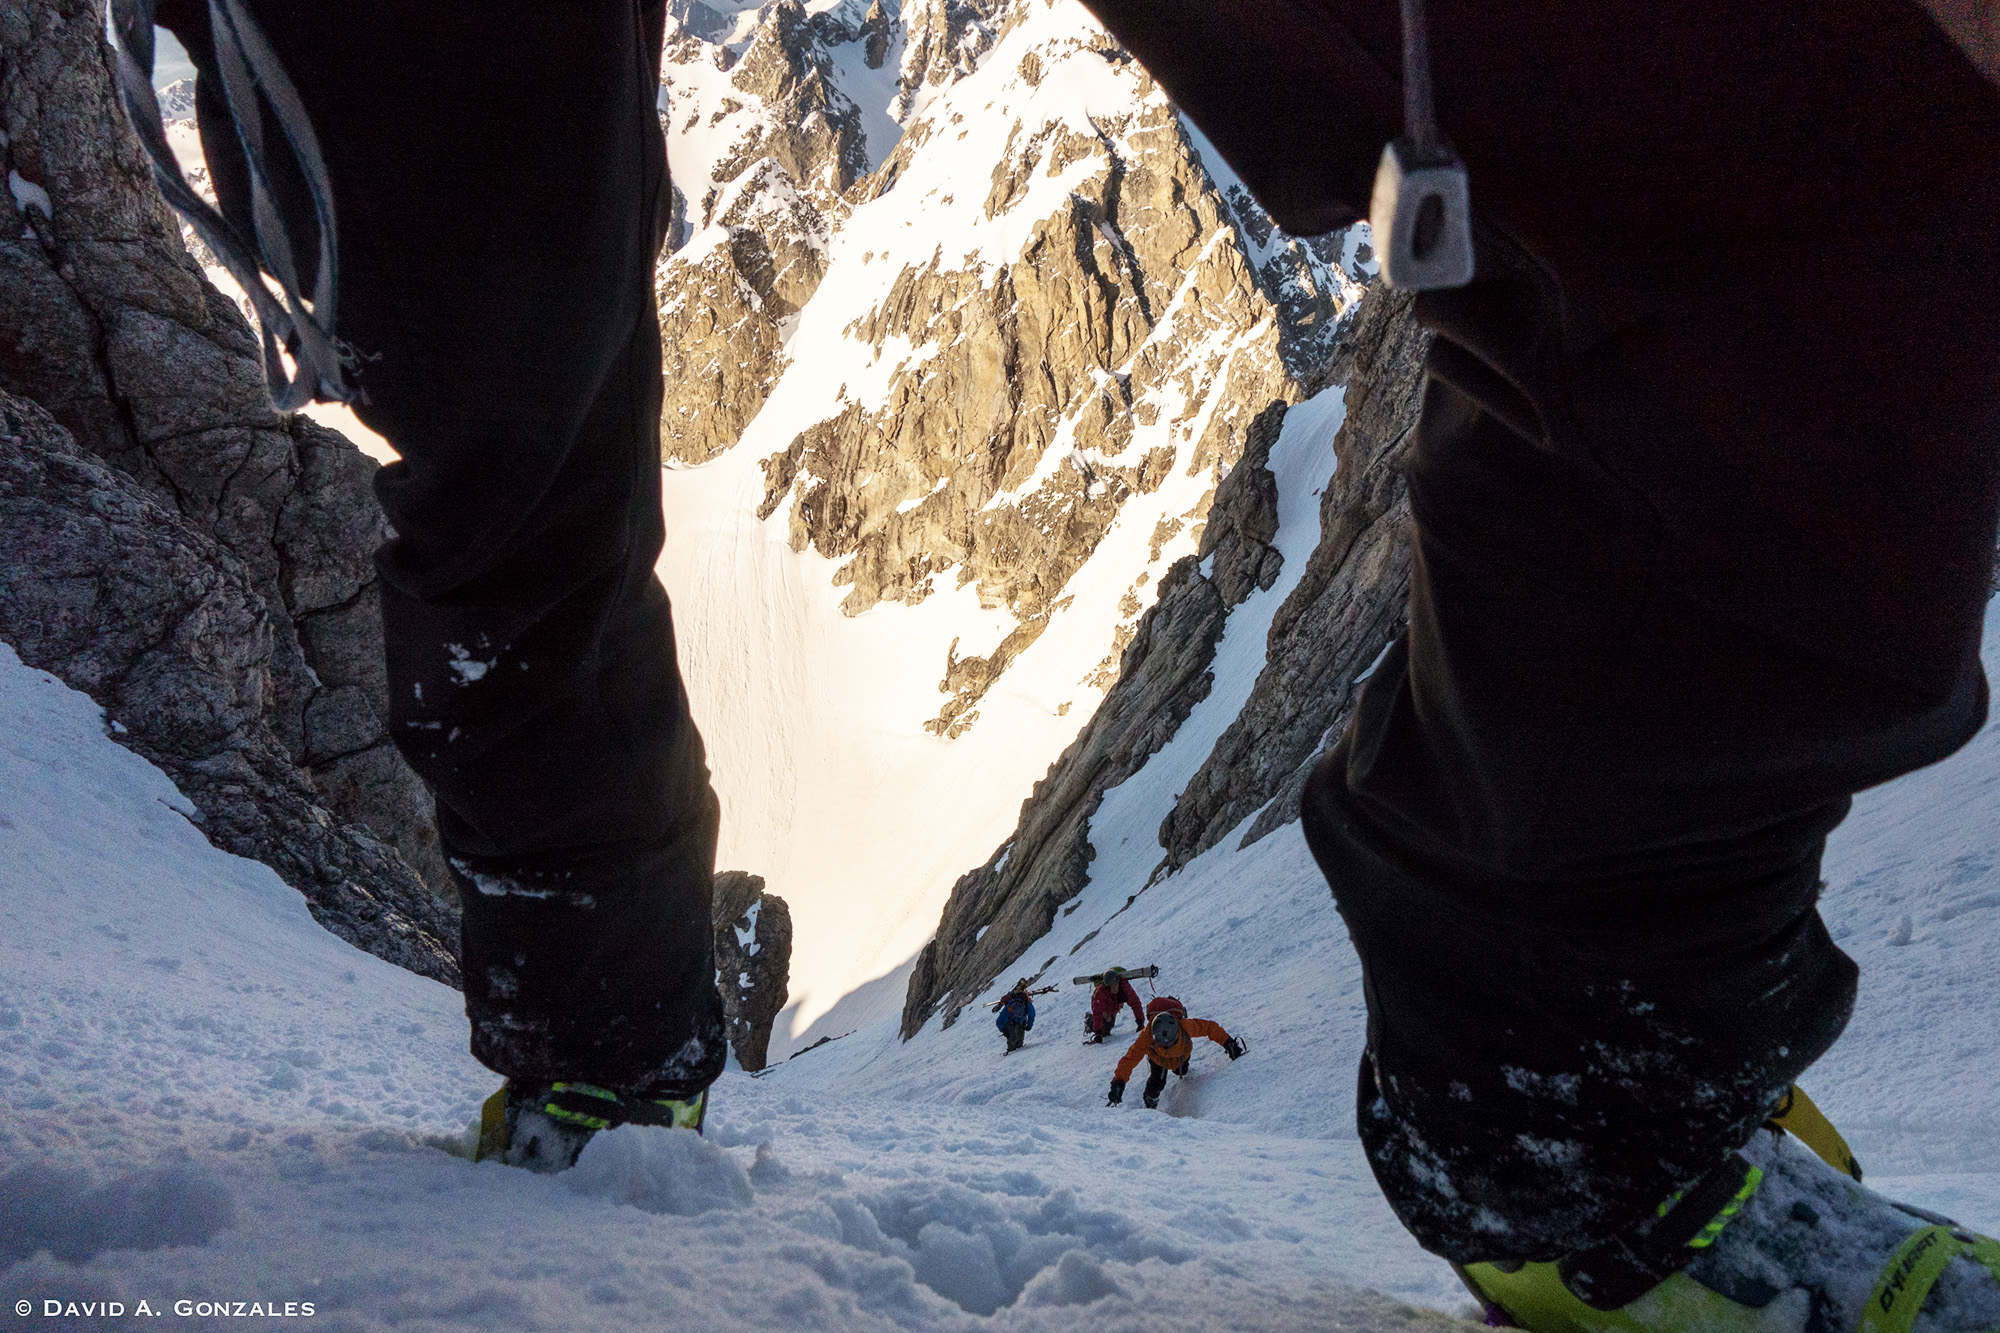 David Gonzales gets a nice view of Sasha, Hans, and Nancy Johnstone as they punch up the firm snow in the Grand Teton's lower Stettner Couloir.